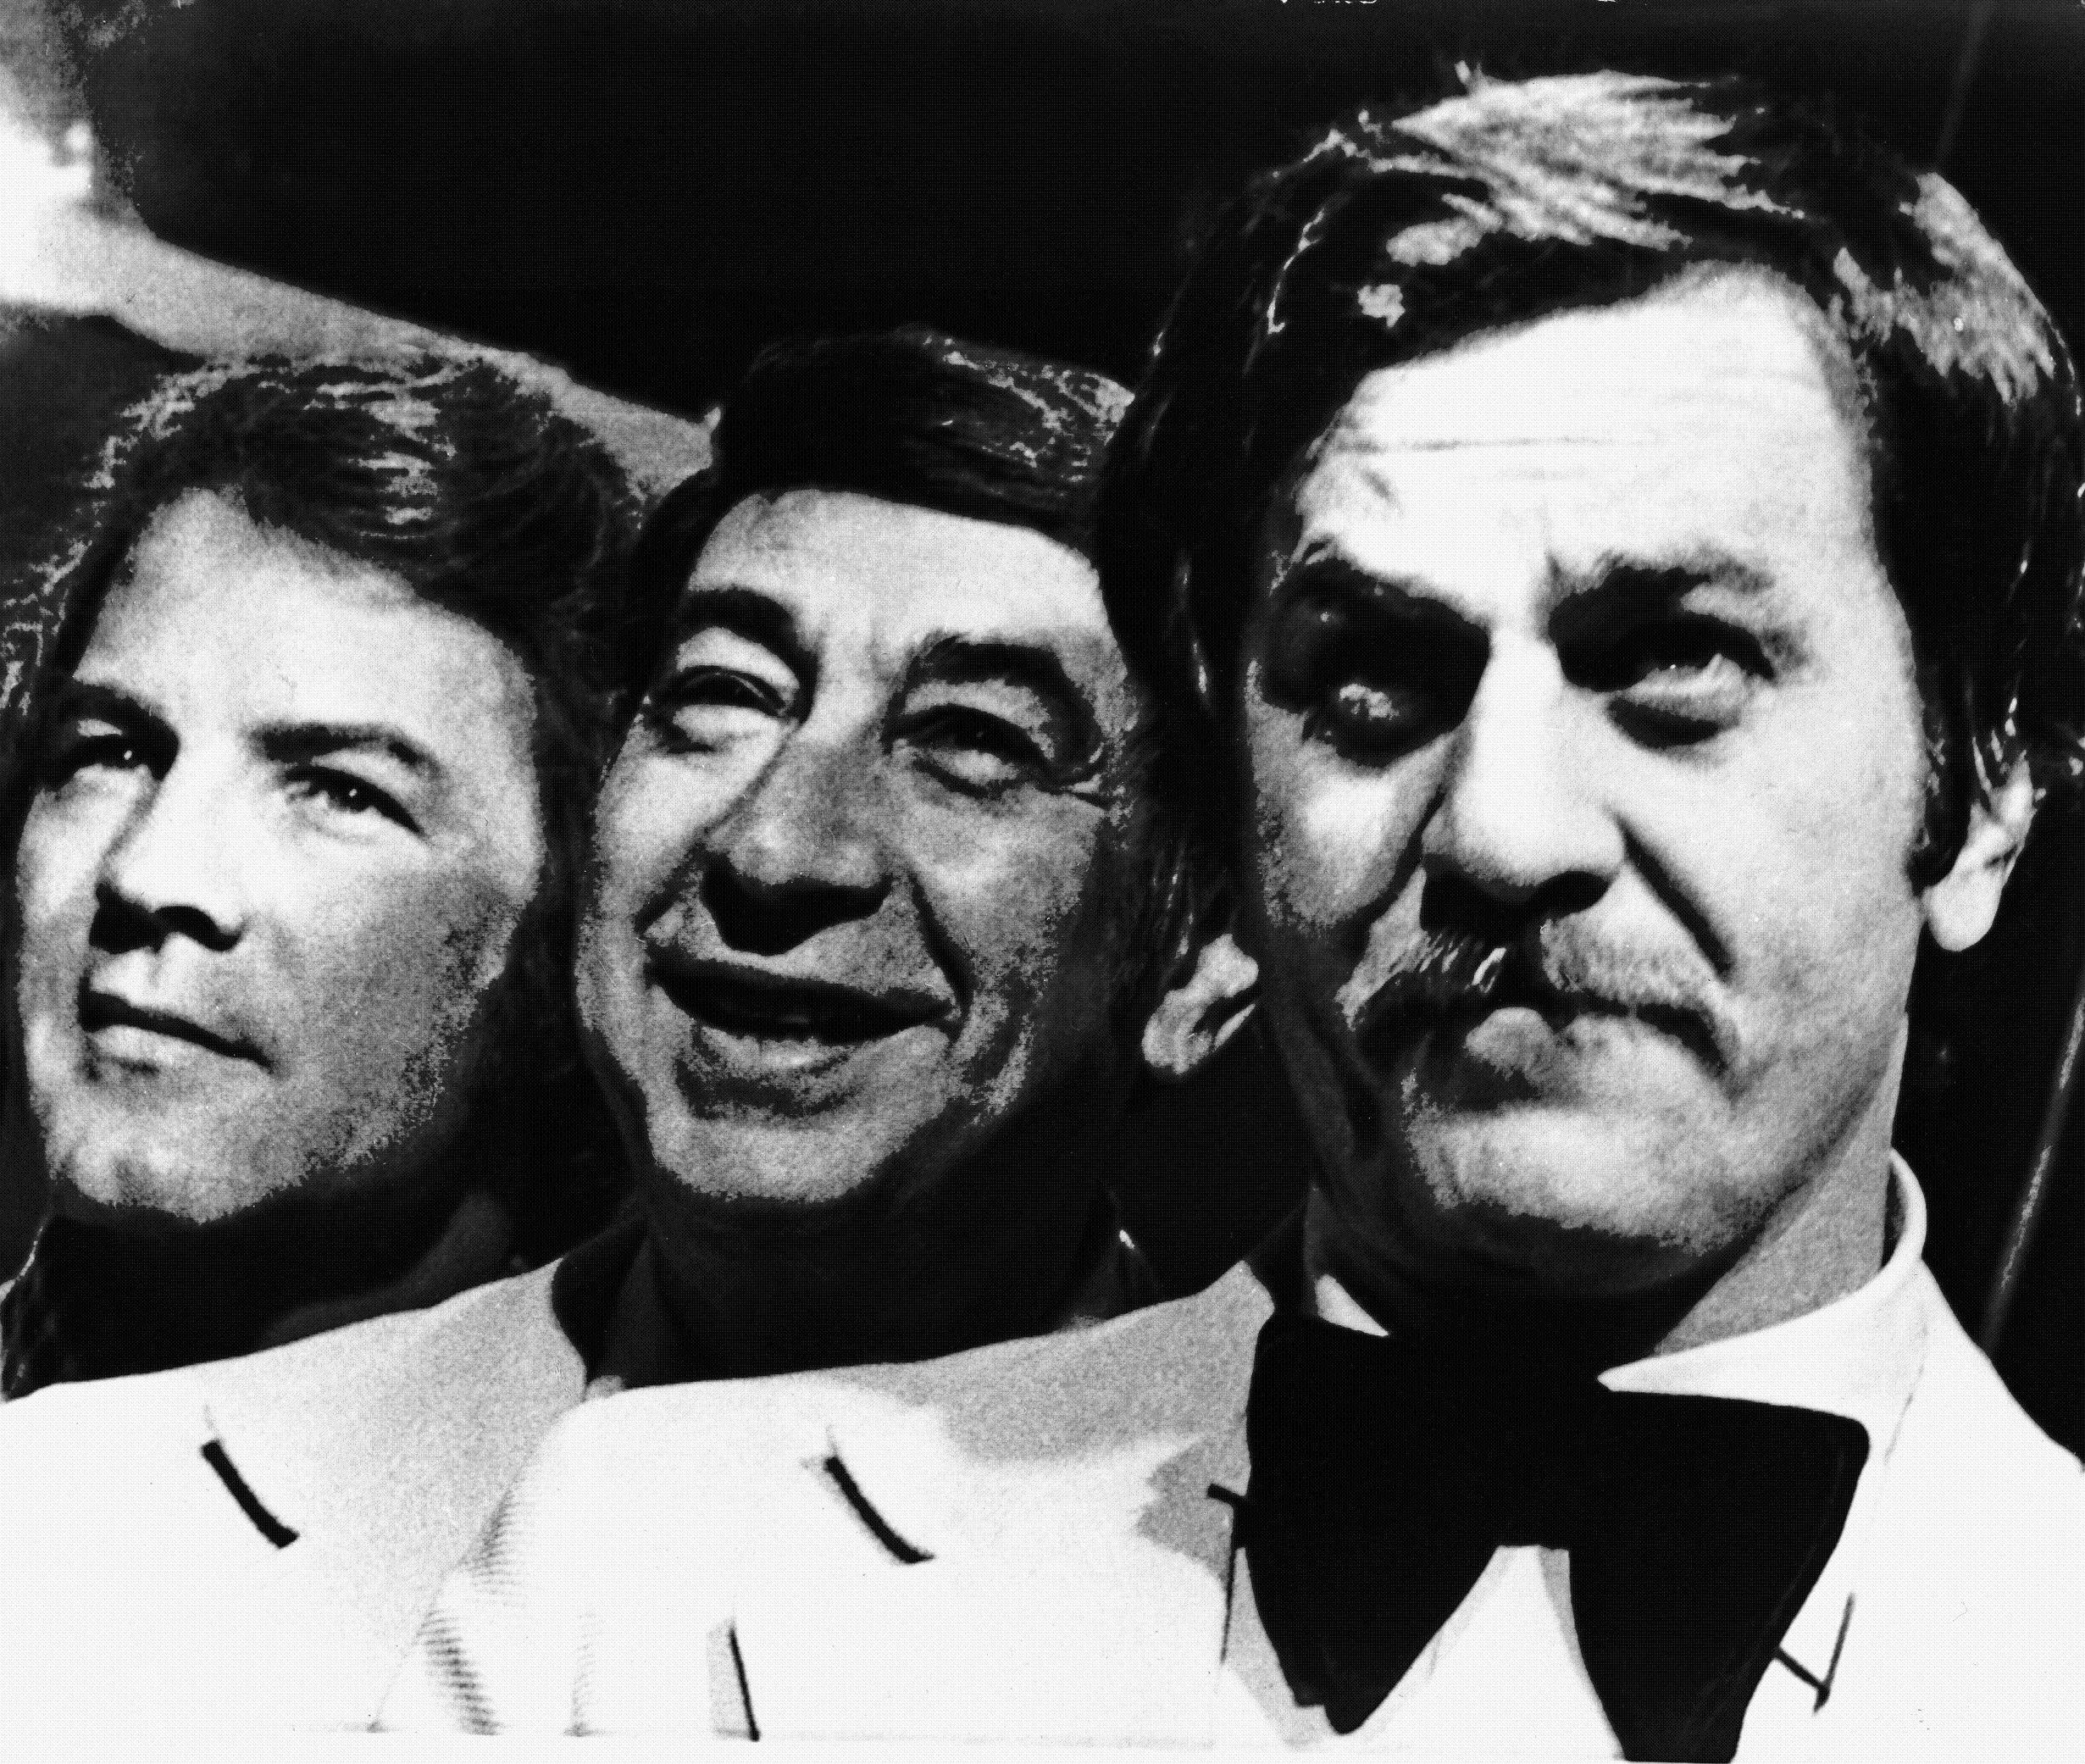 This Nov. 20, 1973, file photo shows, from left, Frank Gifford, Howard Cosell and Don Meredith, before the start of their ABC-TV football telecast, in Atlanta, Georgia.